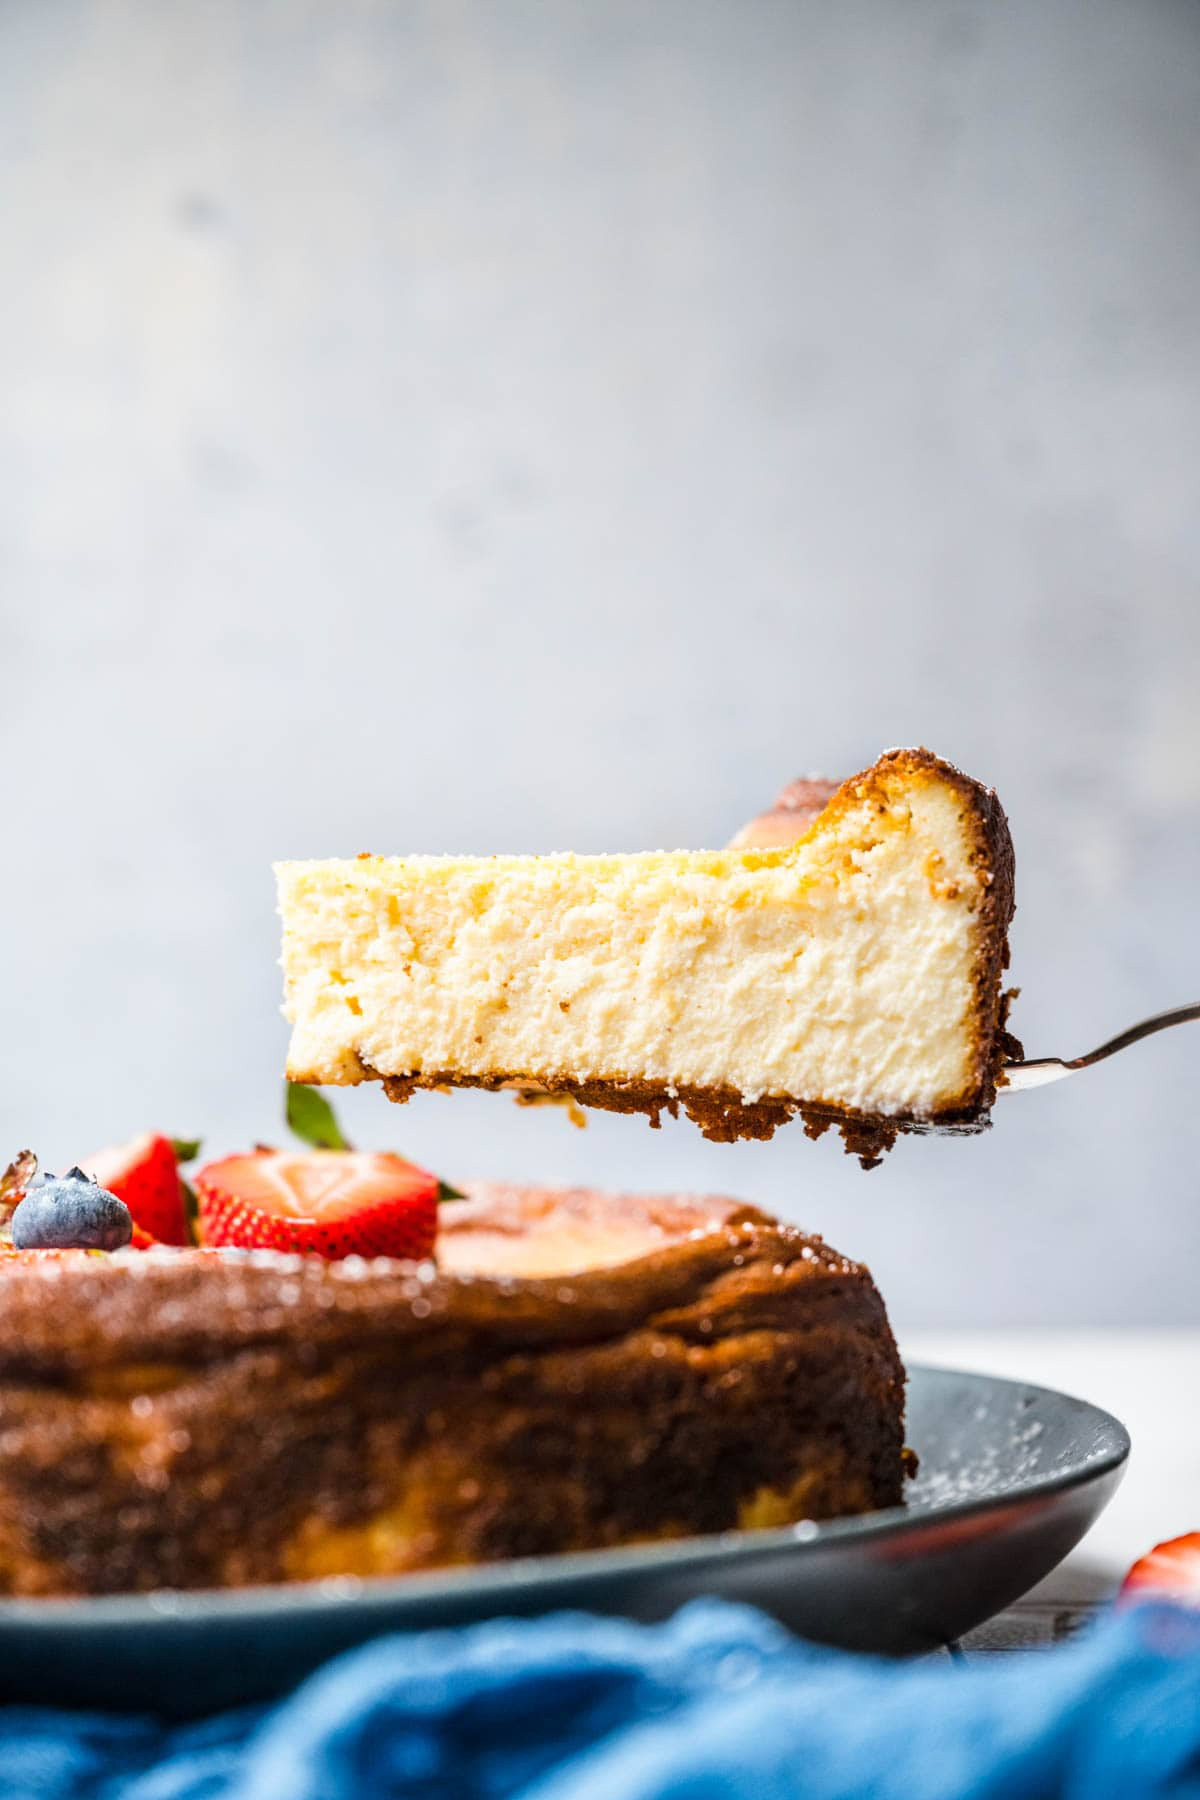 Ricotta Cheesecake side view slice lifted from whole cake